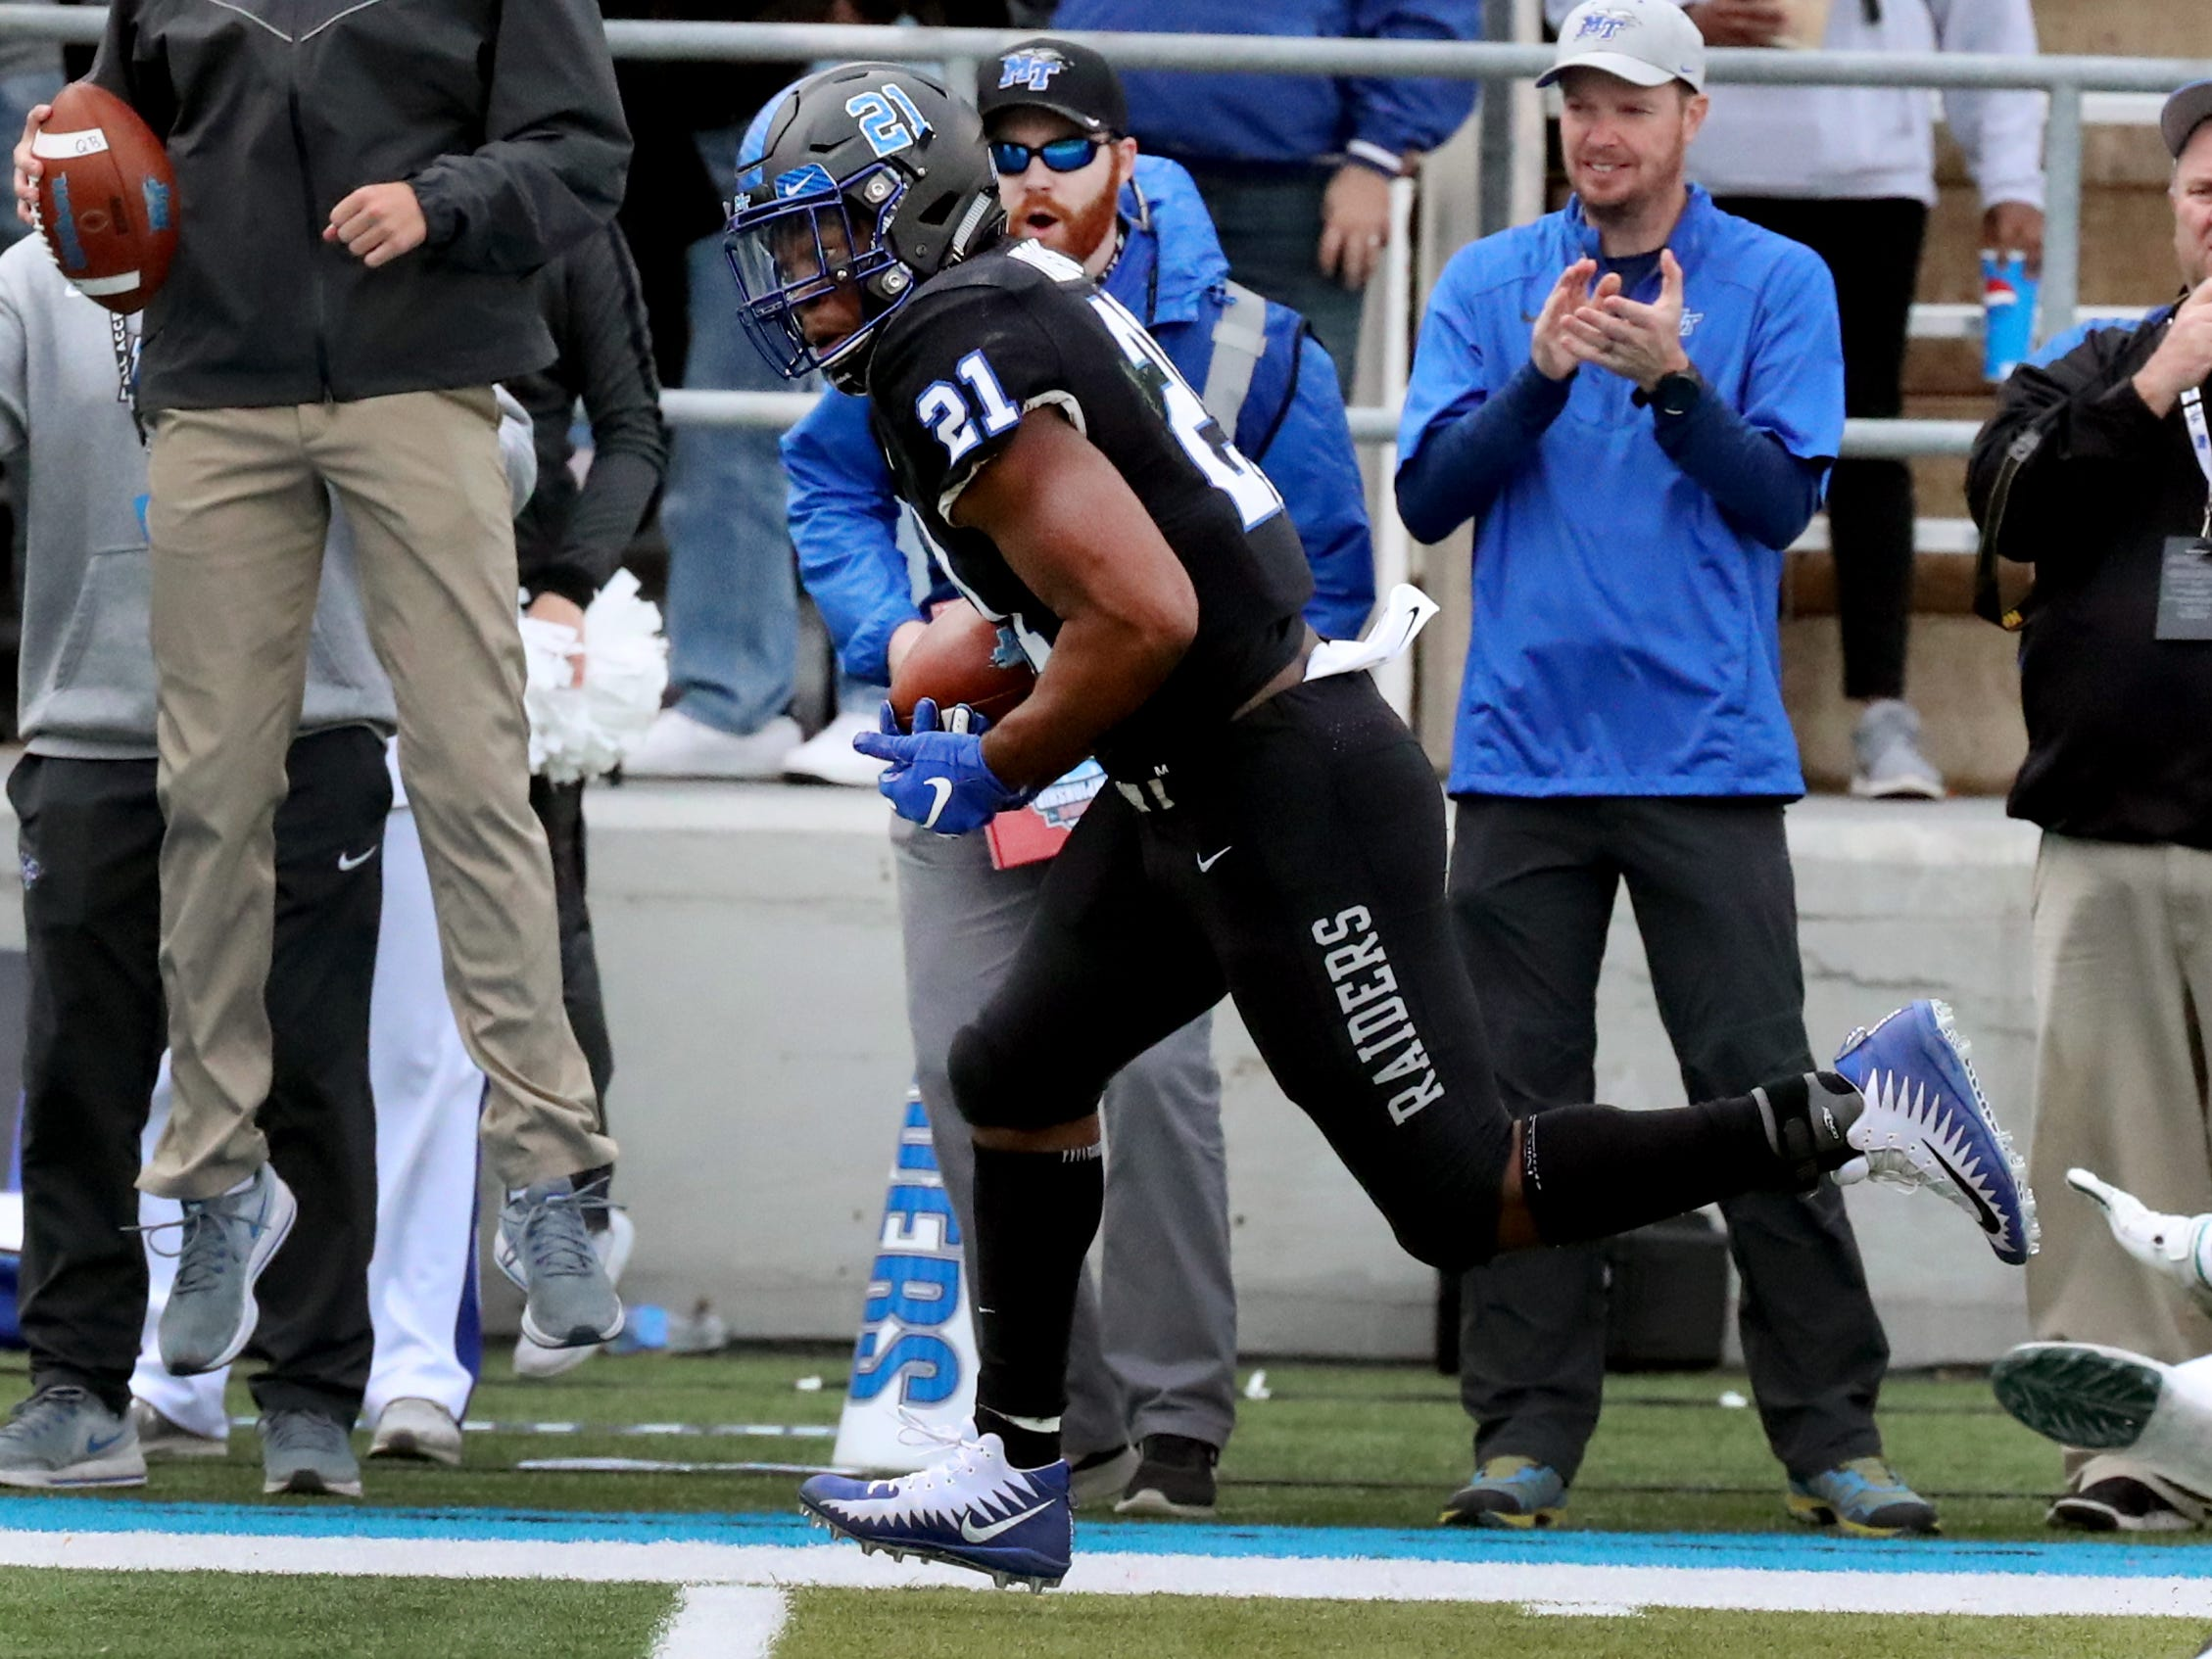 MTSU's running back Tavares Thomas (21) runs the ball in for a touchdown against UAB during the Conference USA Championship at MTSU on Saturday, Dec. 1, 2018.